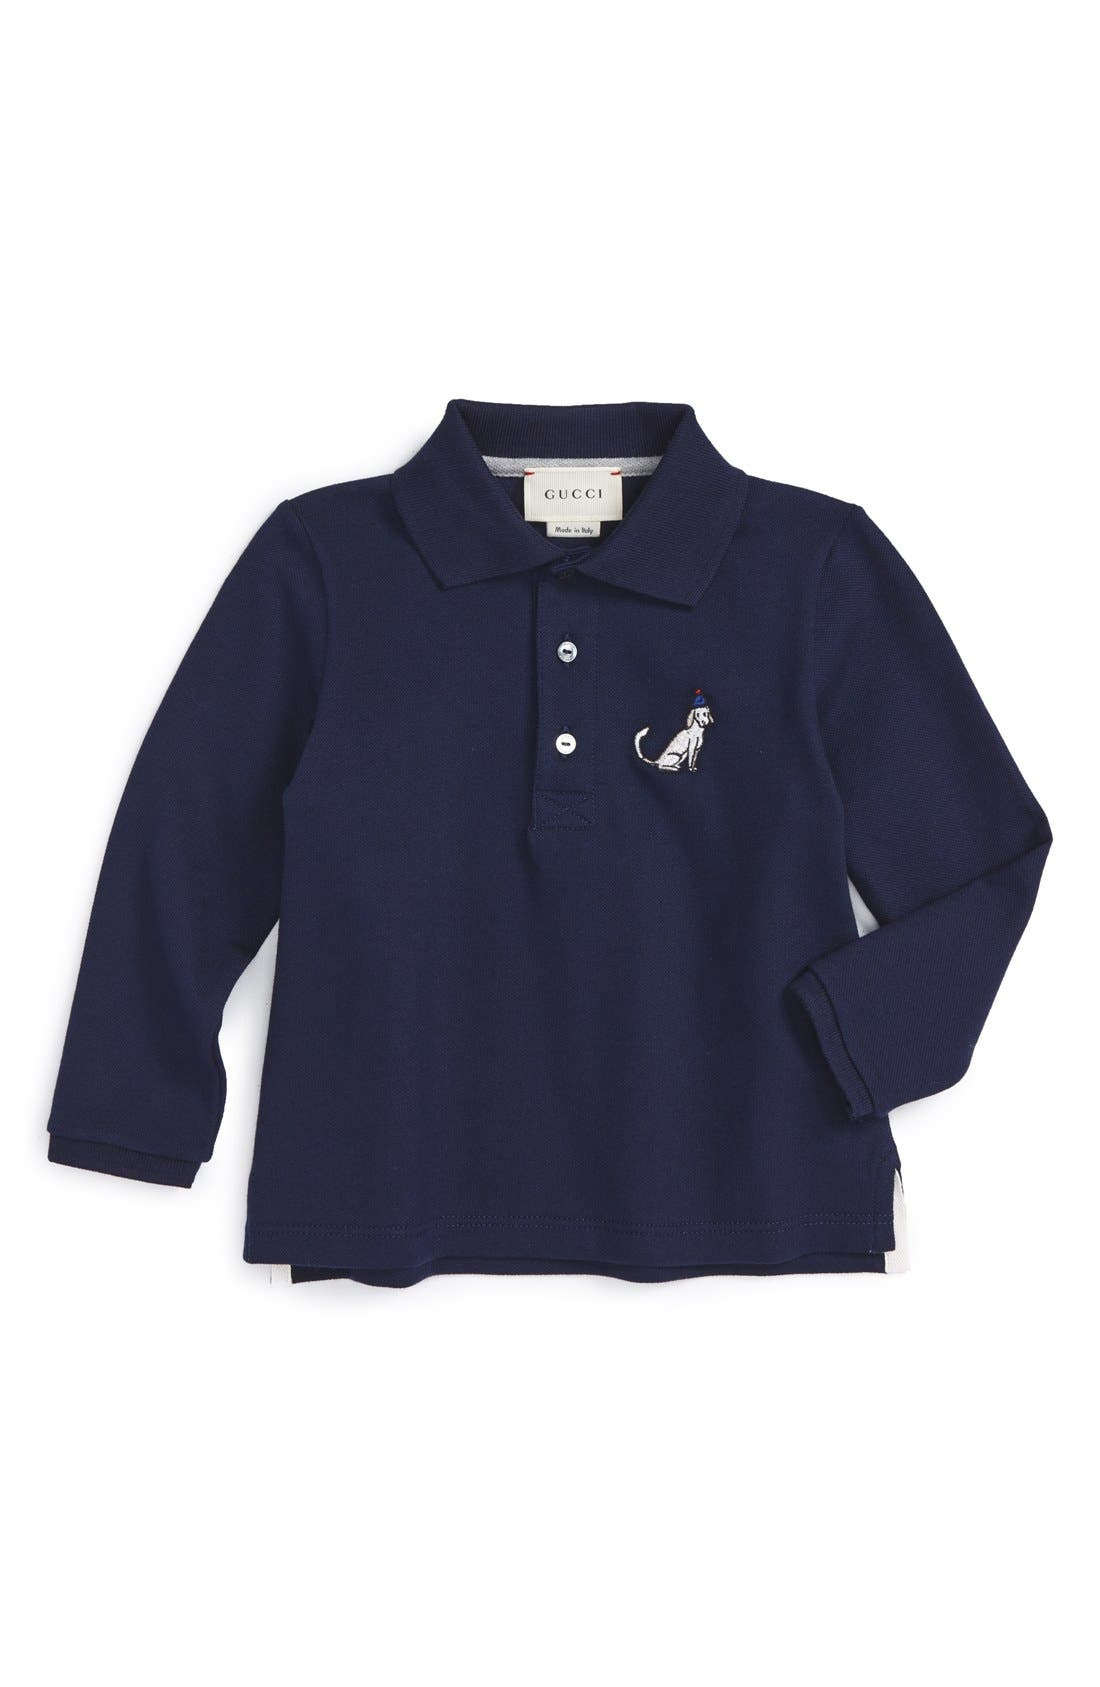 Gucci Long Sleeve Polo (Baby Boys)